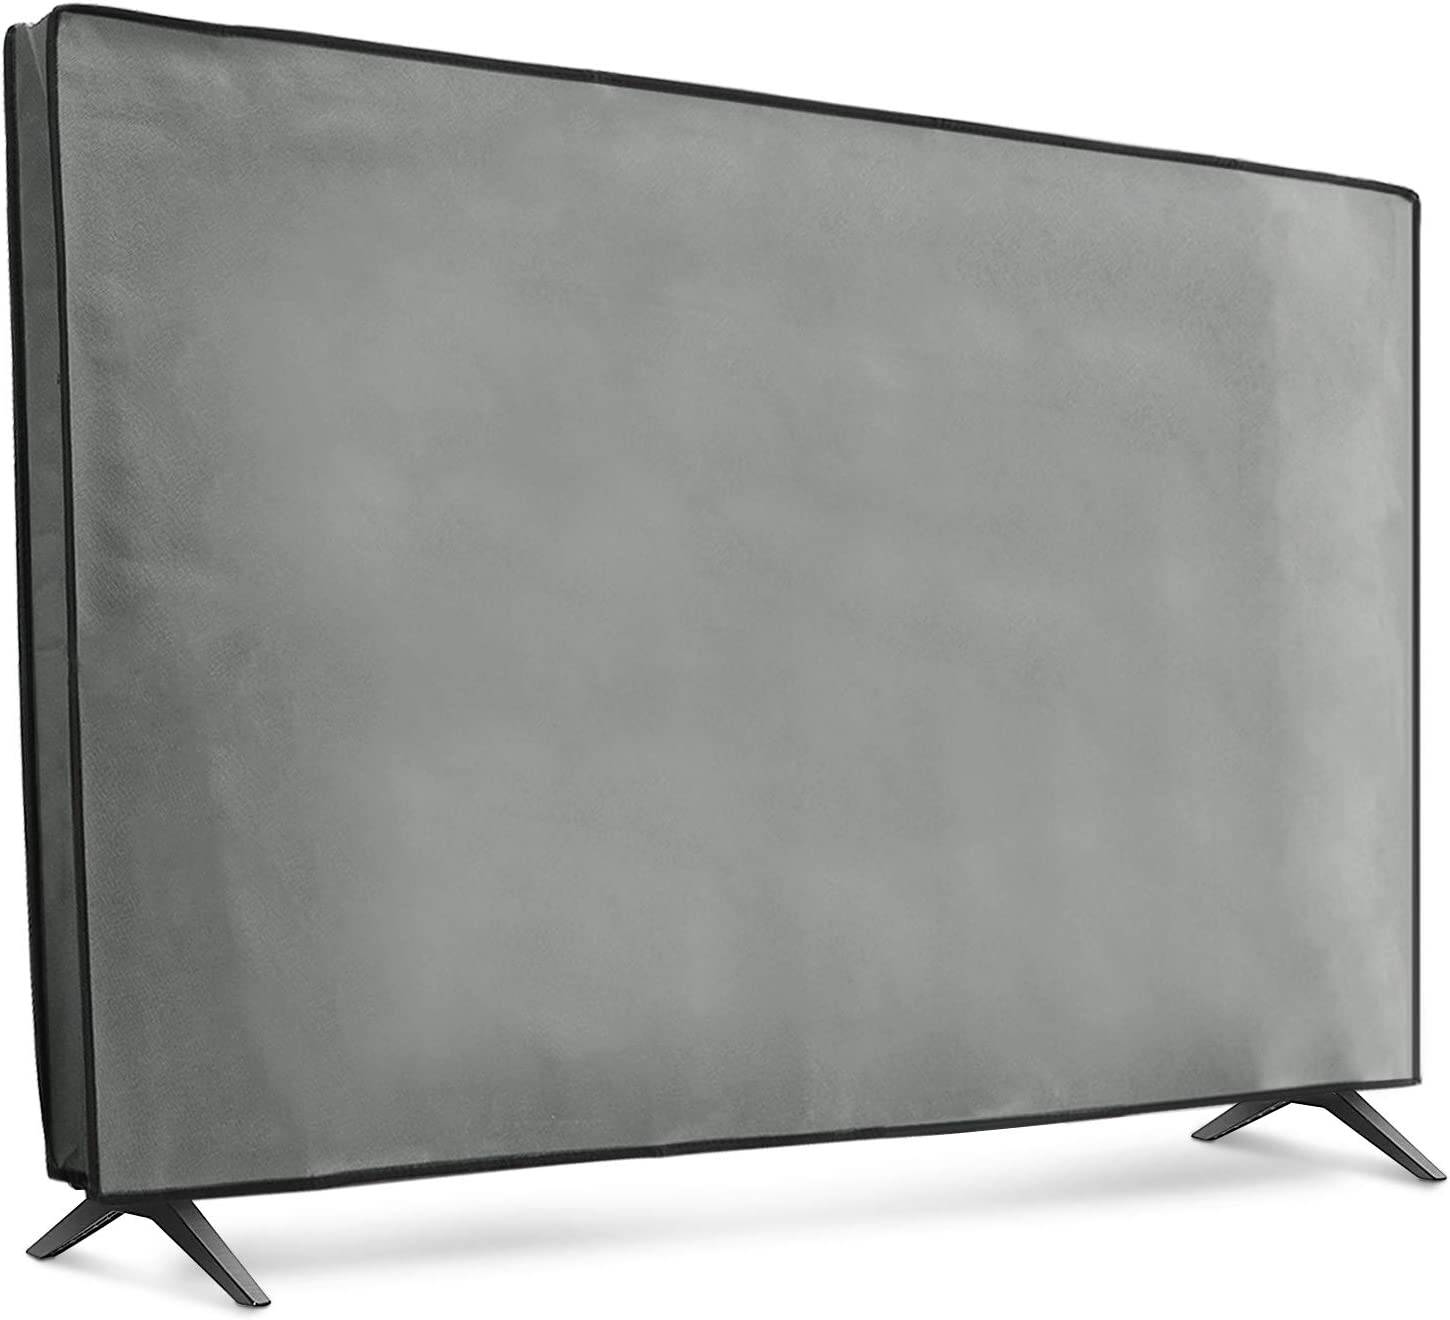 "kwmobile Dust Cover for 49-50"" TV - Fabric TV Display Protector for Flat Screen TVs - Light Grey"